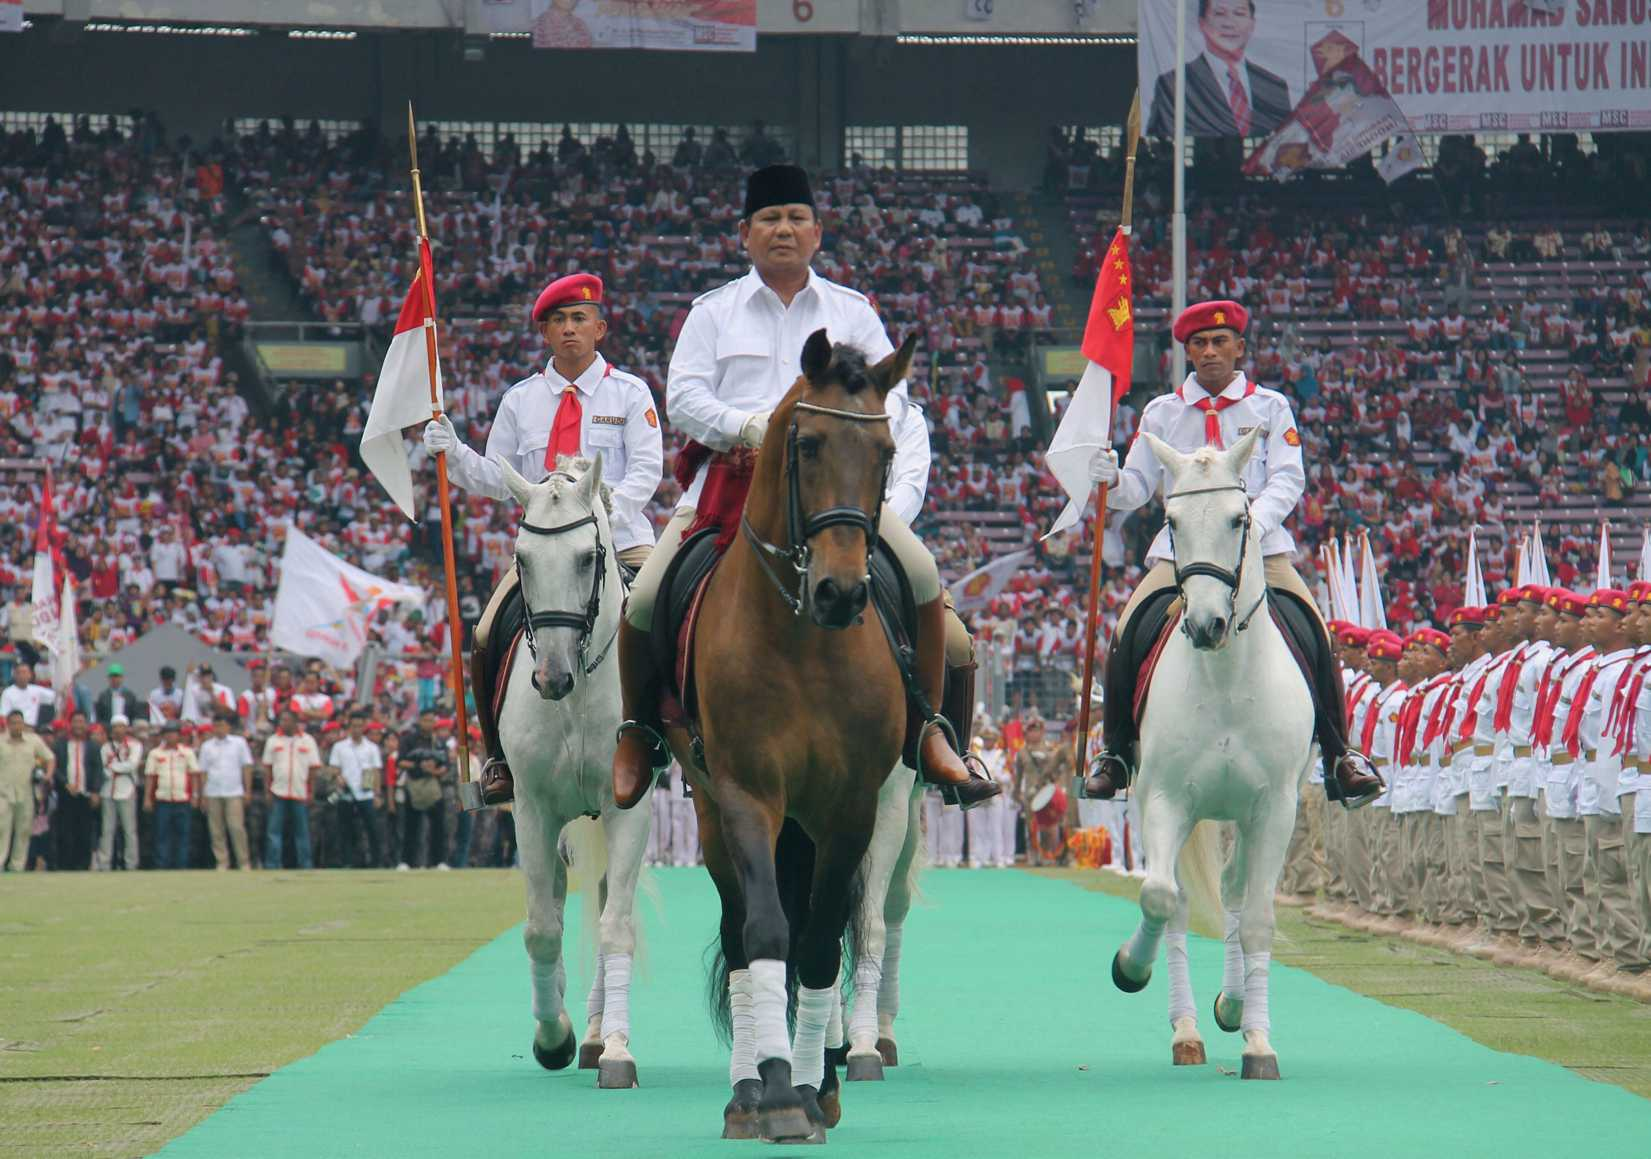 Retired general Prabowo Subianto rides a horse at a stadium in Jakarta during a campaign rally of the Gerindra party on March 23, 2014